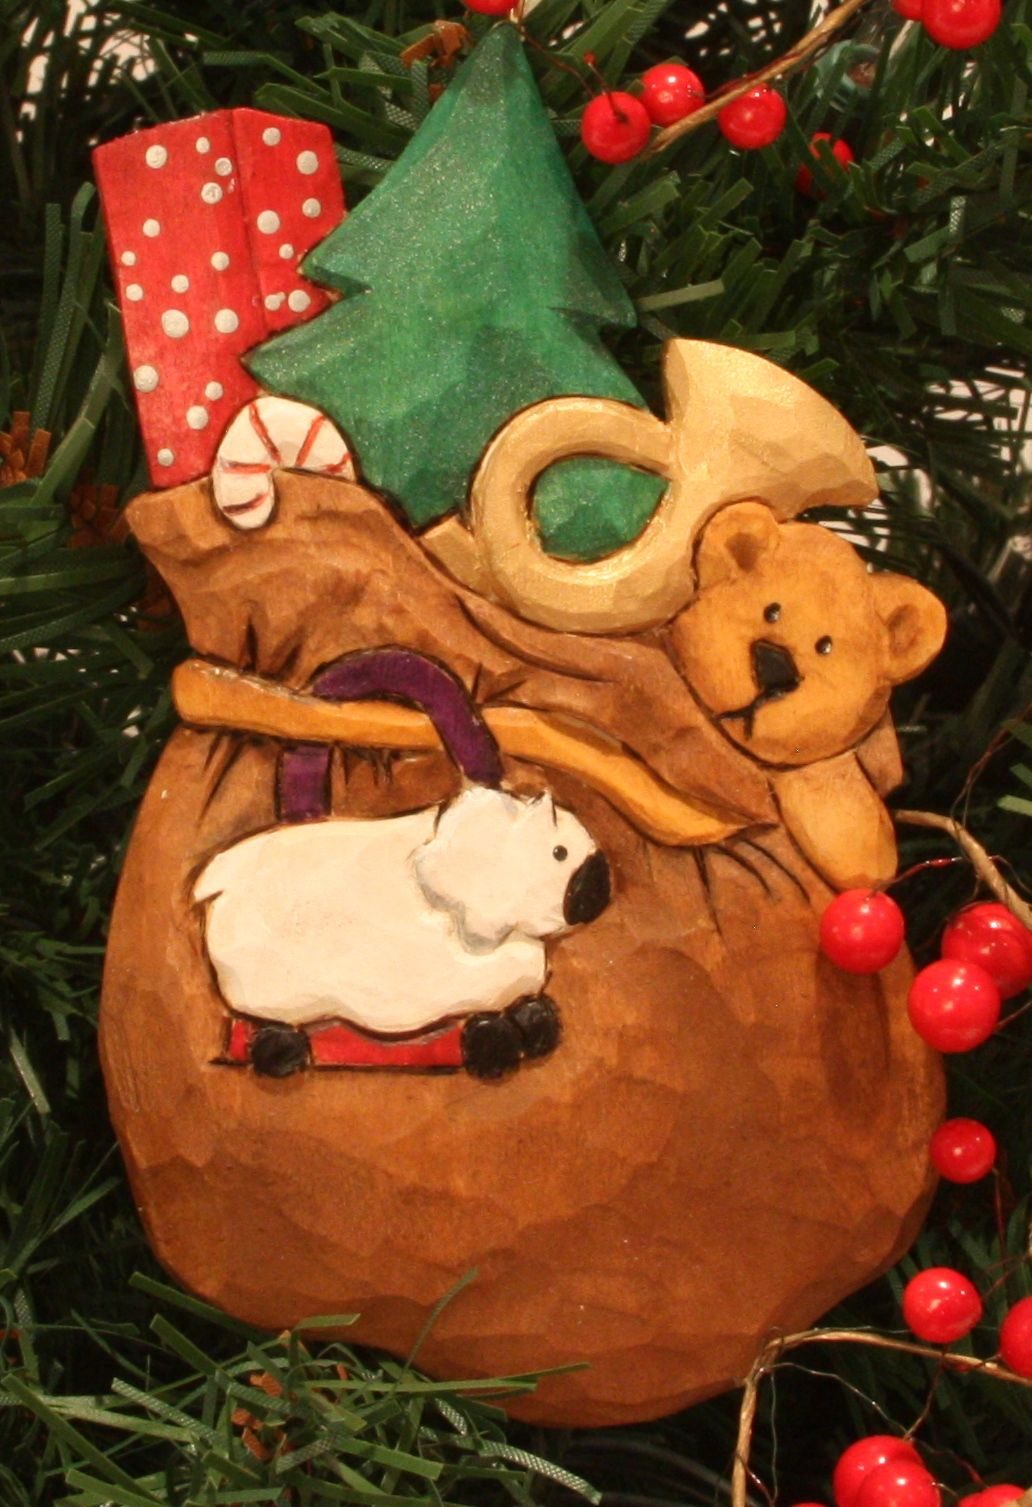 Carved And Painted By Susan L Hendrix Wasatch Woodcarver Wood Carving Patterns Santa Carving Carving